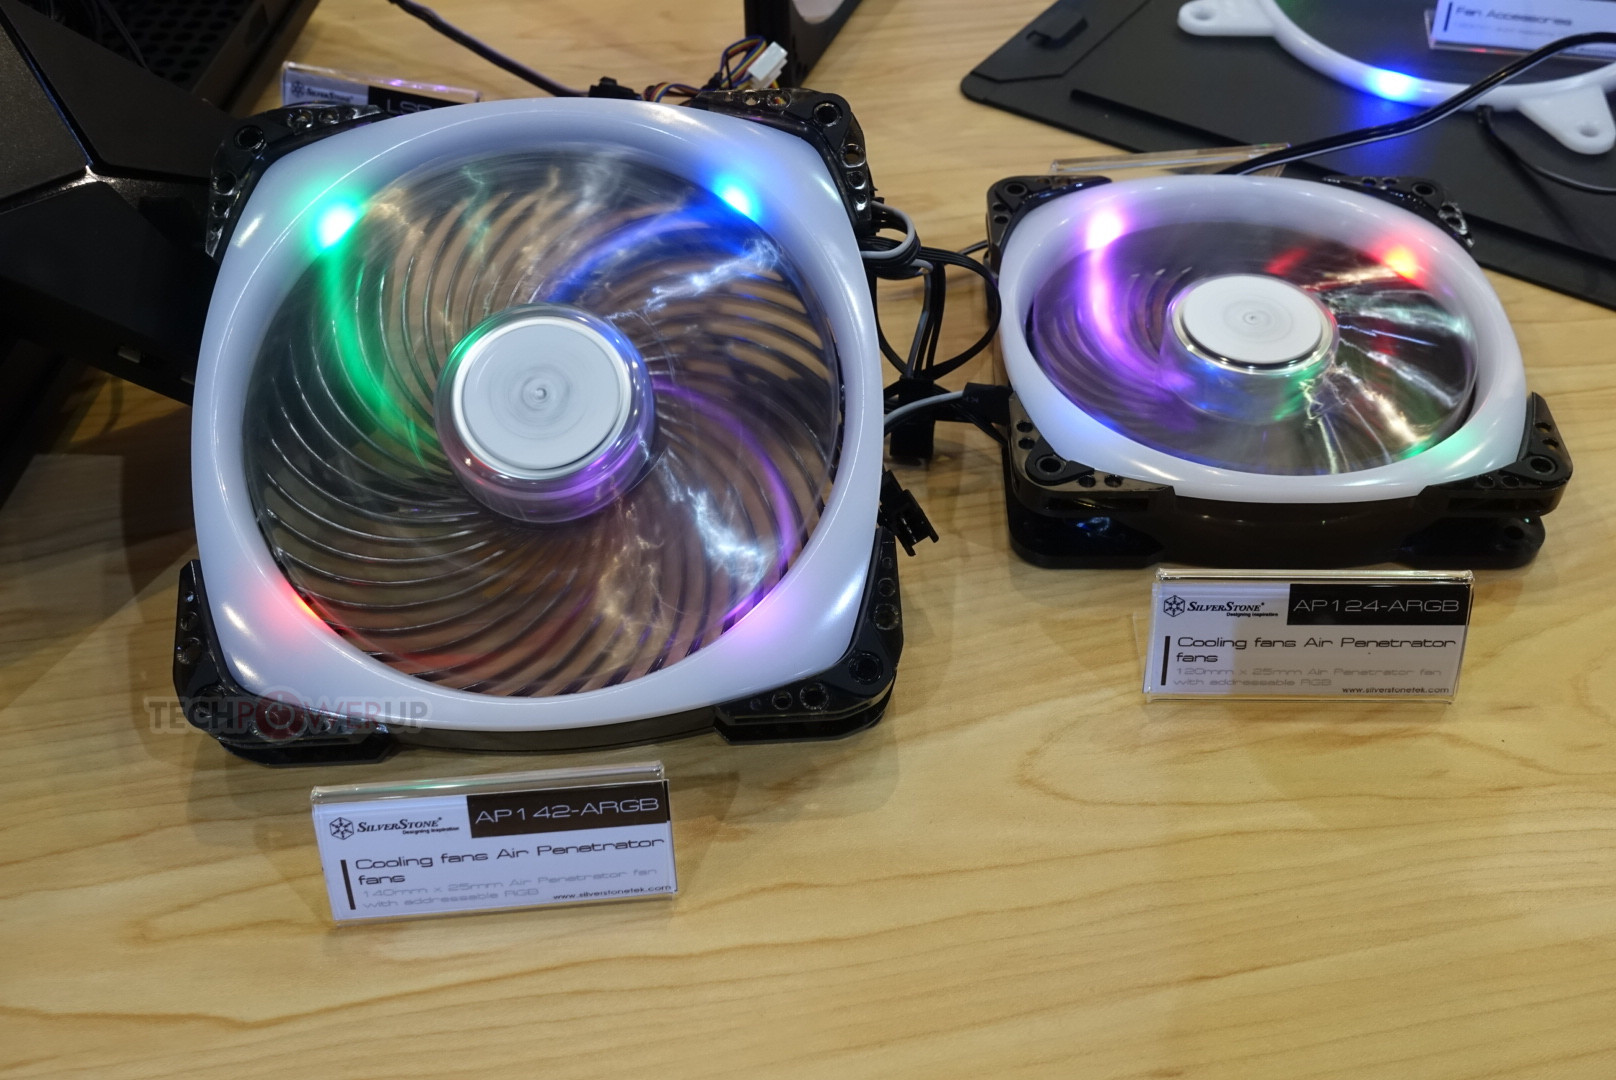 SilverStone Intros Fans and Fan-Frames with Addressable RGB